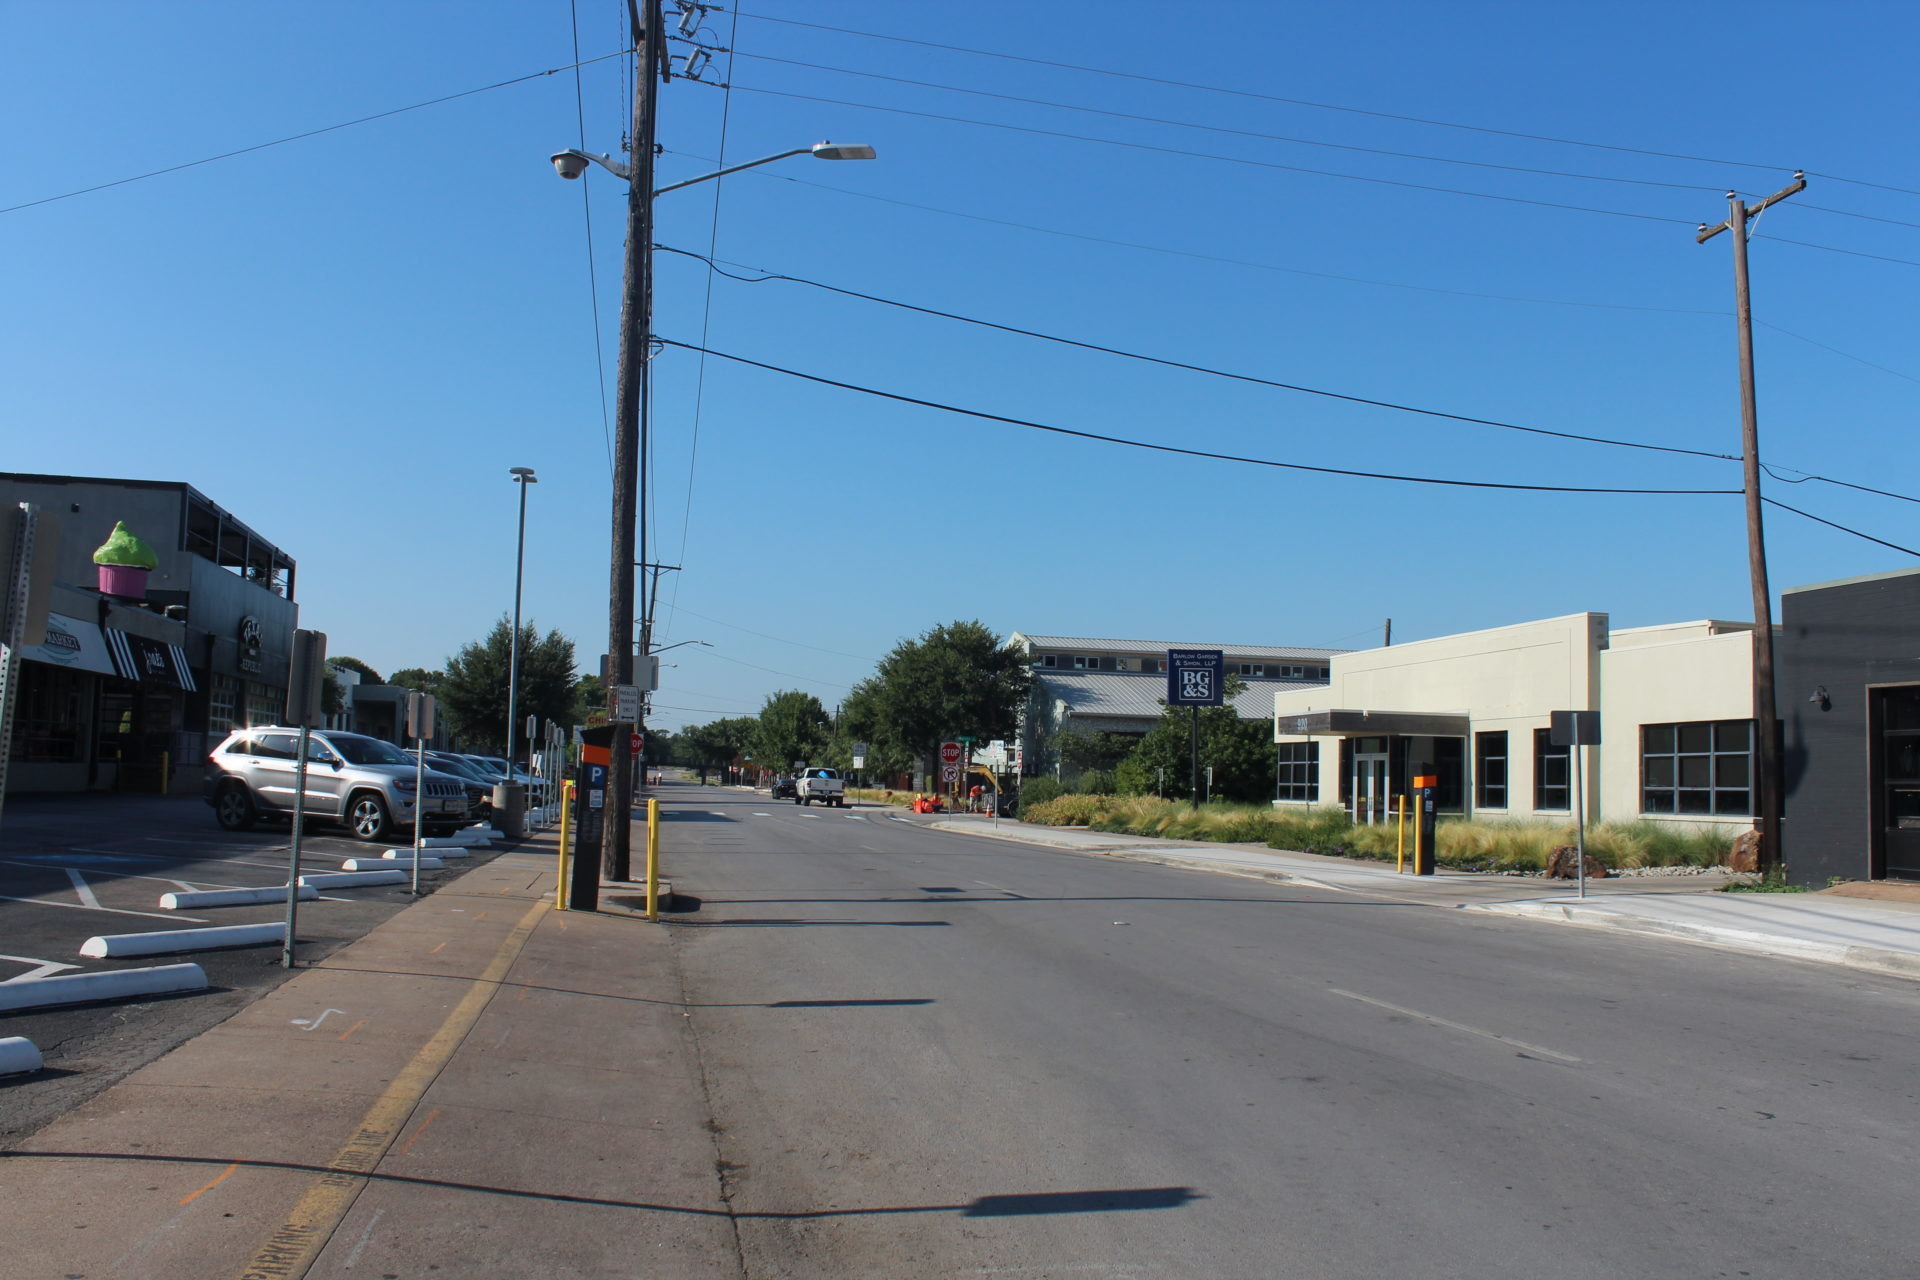 Ground-level view of a street with a stop sign, a grey building on the right, a parking lot on the left, and an electric line